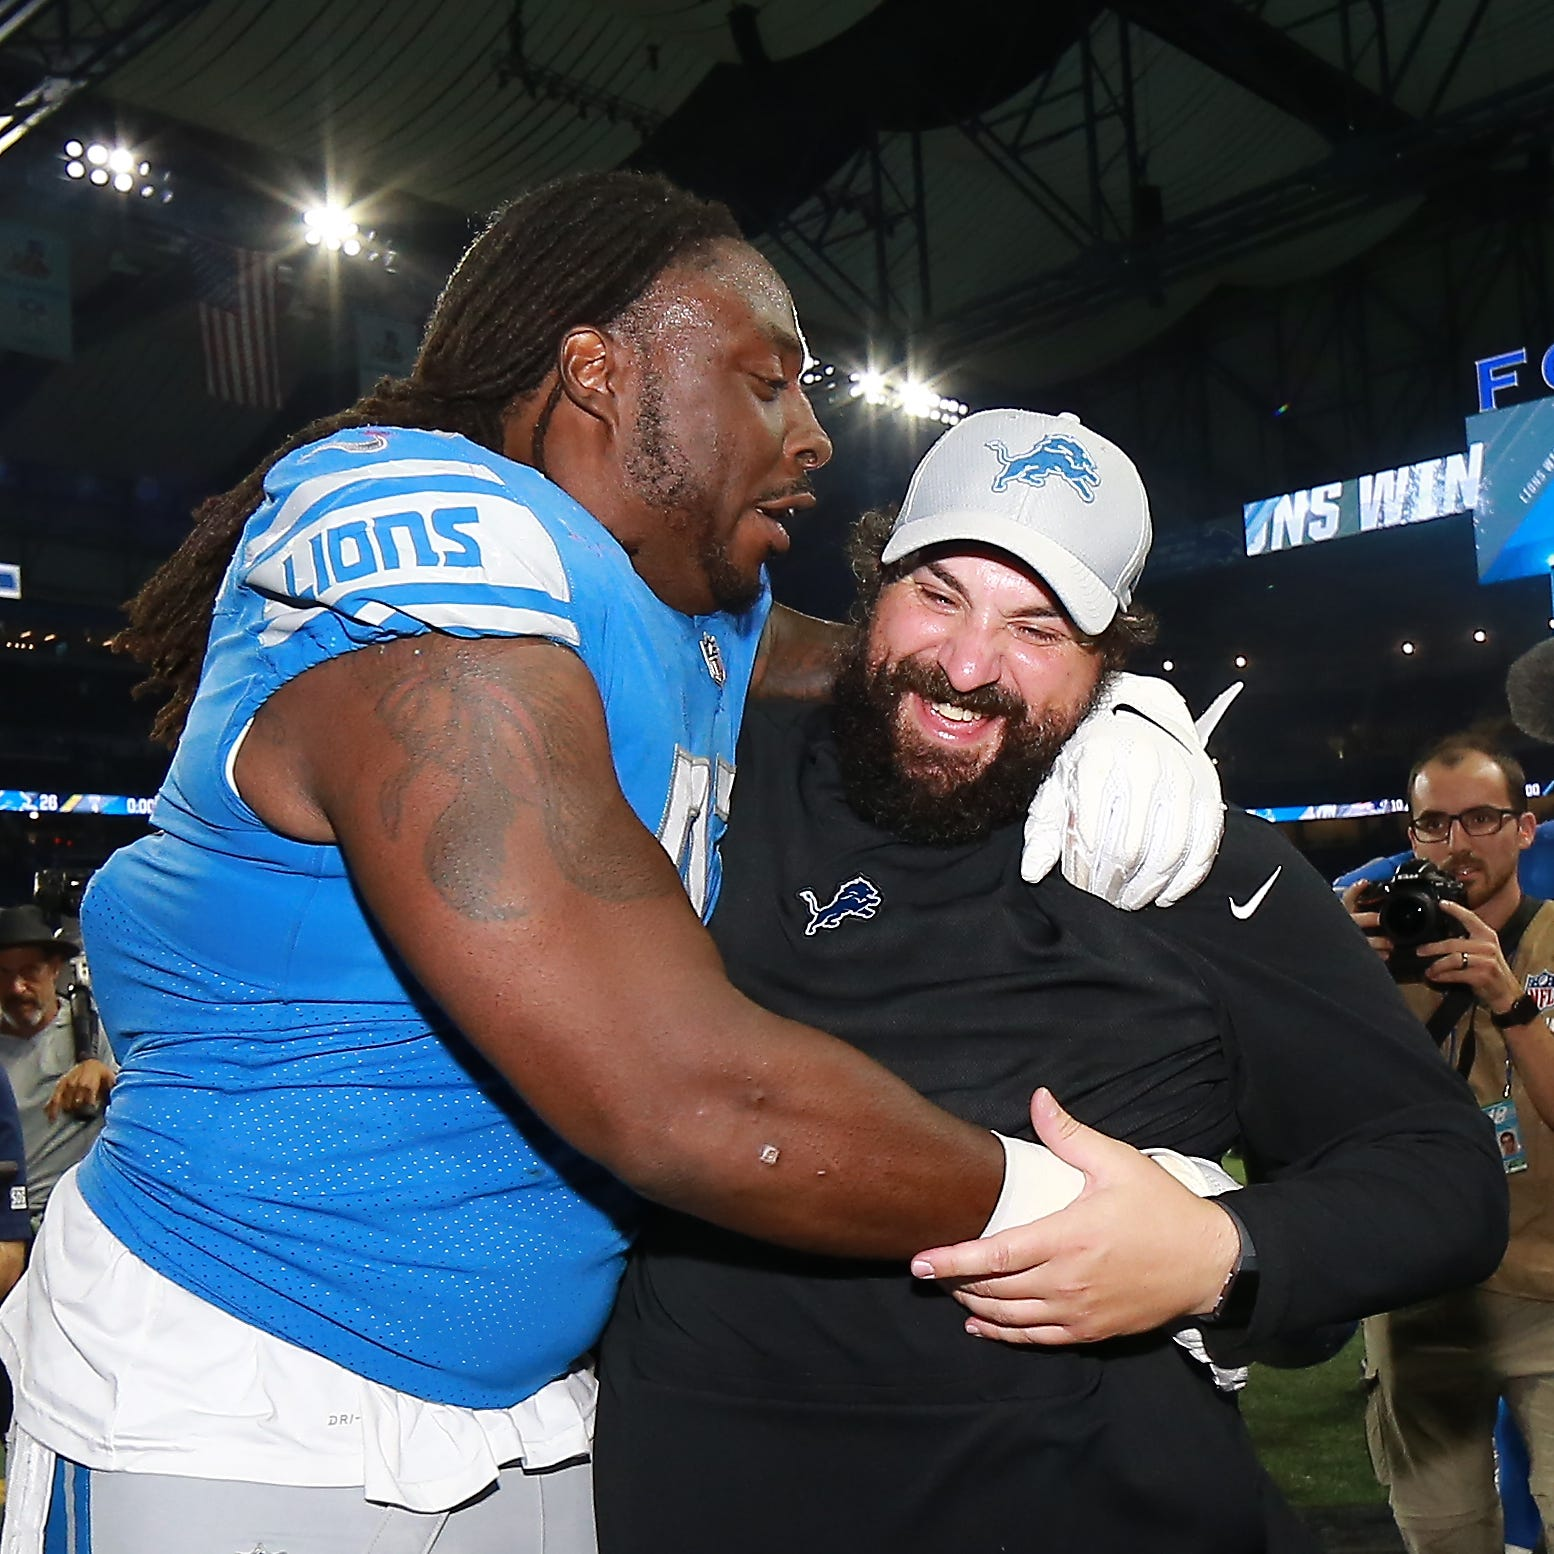 Detroit Lions' Ricky Jean Francois hopes Matt Patricia slept after win